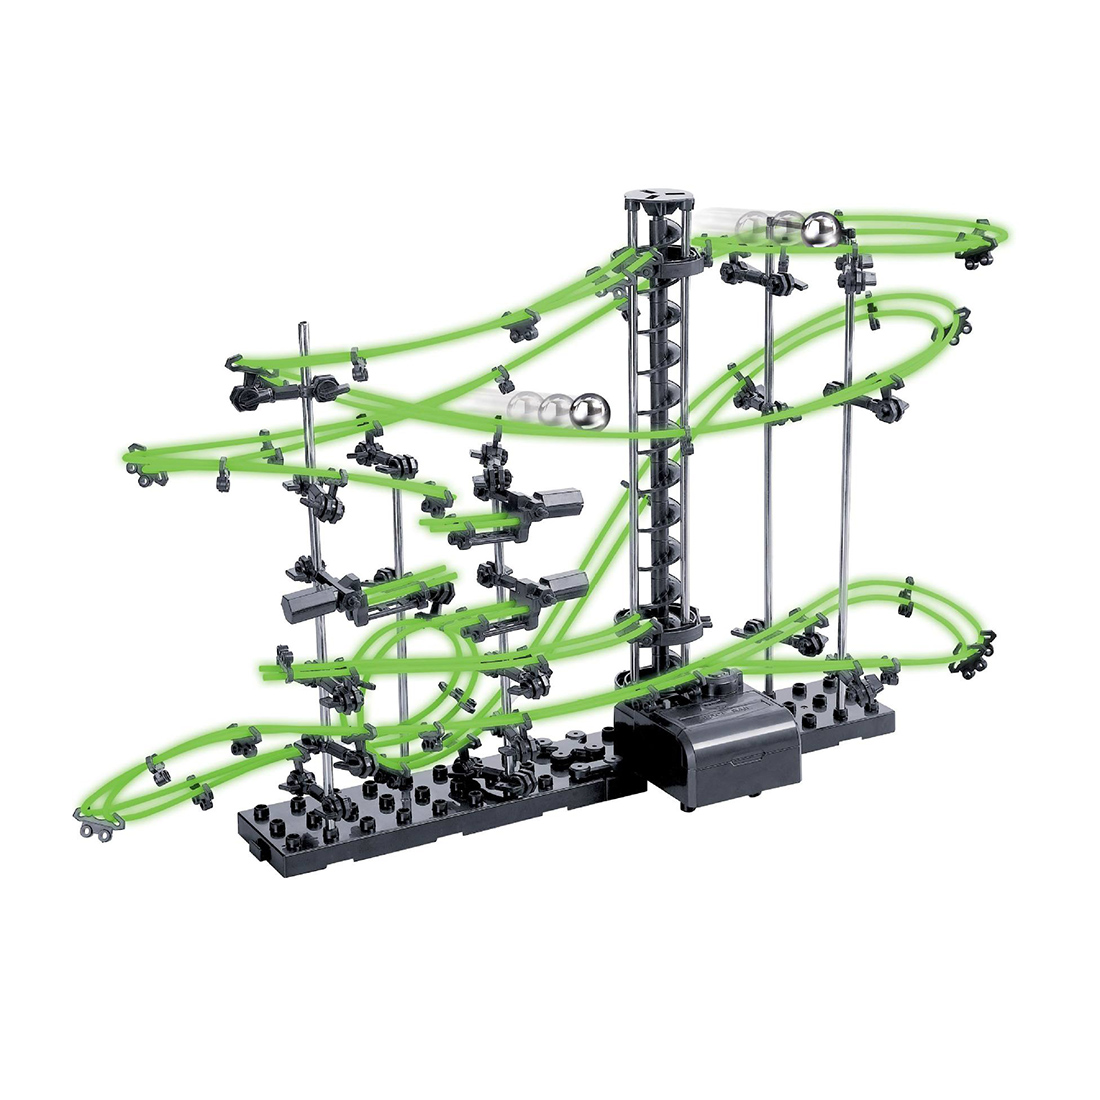 Model Building Kits Toy For Kids DIY Educational Toys Space Rail Level 2 Glow In Dark Roller Coaster With Steel Balls 10000mm 3000cm rail level 5 marble run night luminous glow in the dark roller coaster model building gifts maze rolling ball sculpture